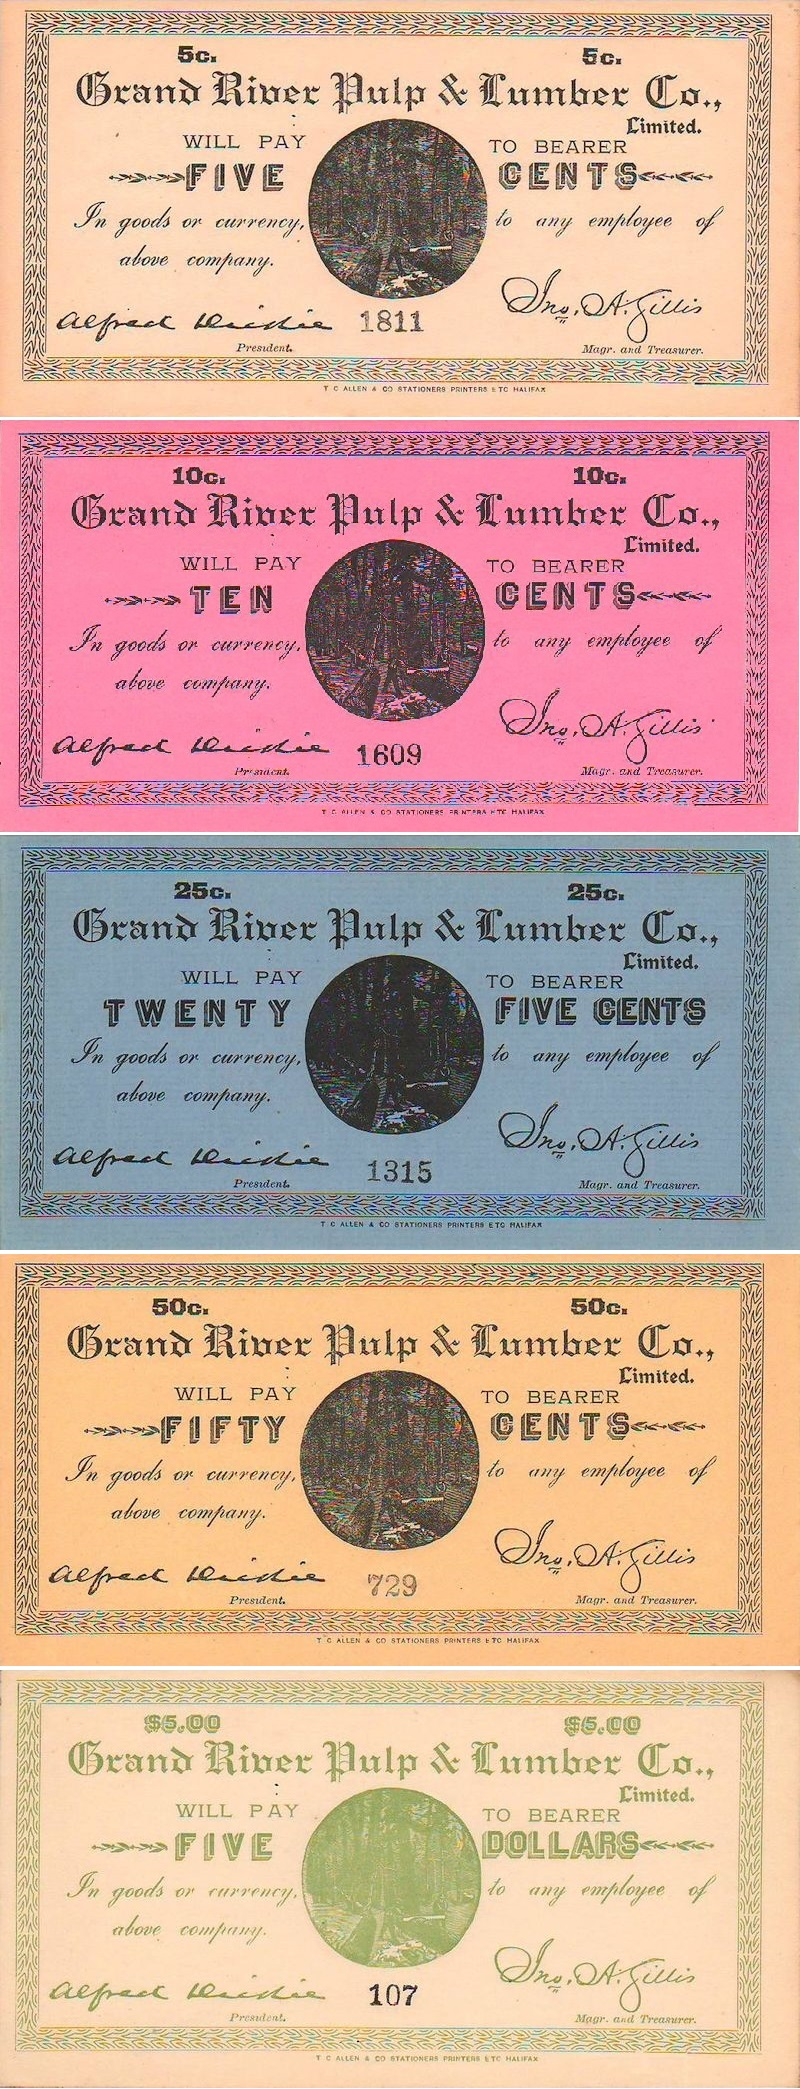 Canada Merchant Scrip from Newfoundland and Labrador - Grand River Pulp & Lumber Company - Set of 5 A/UNC